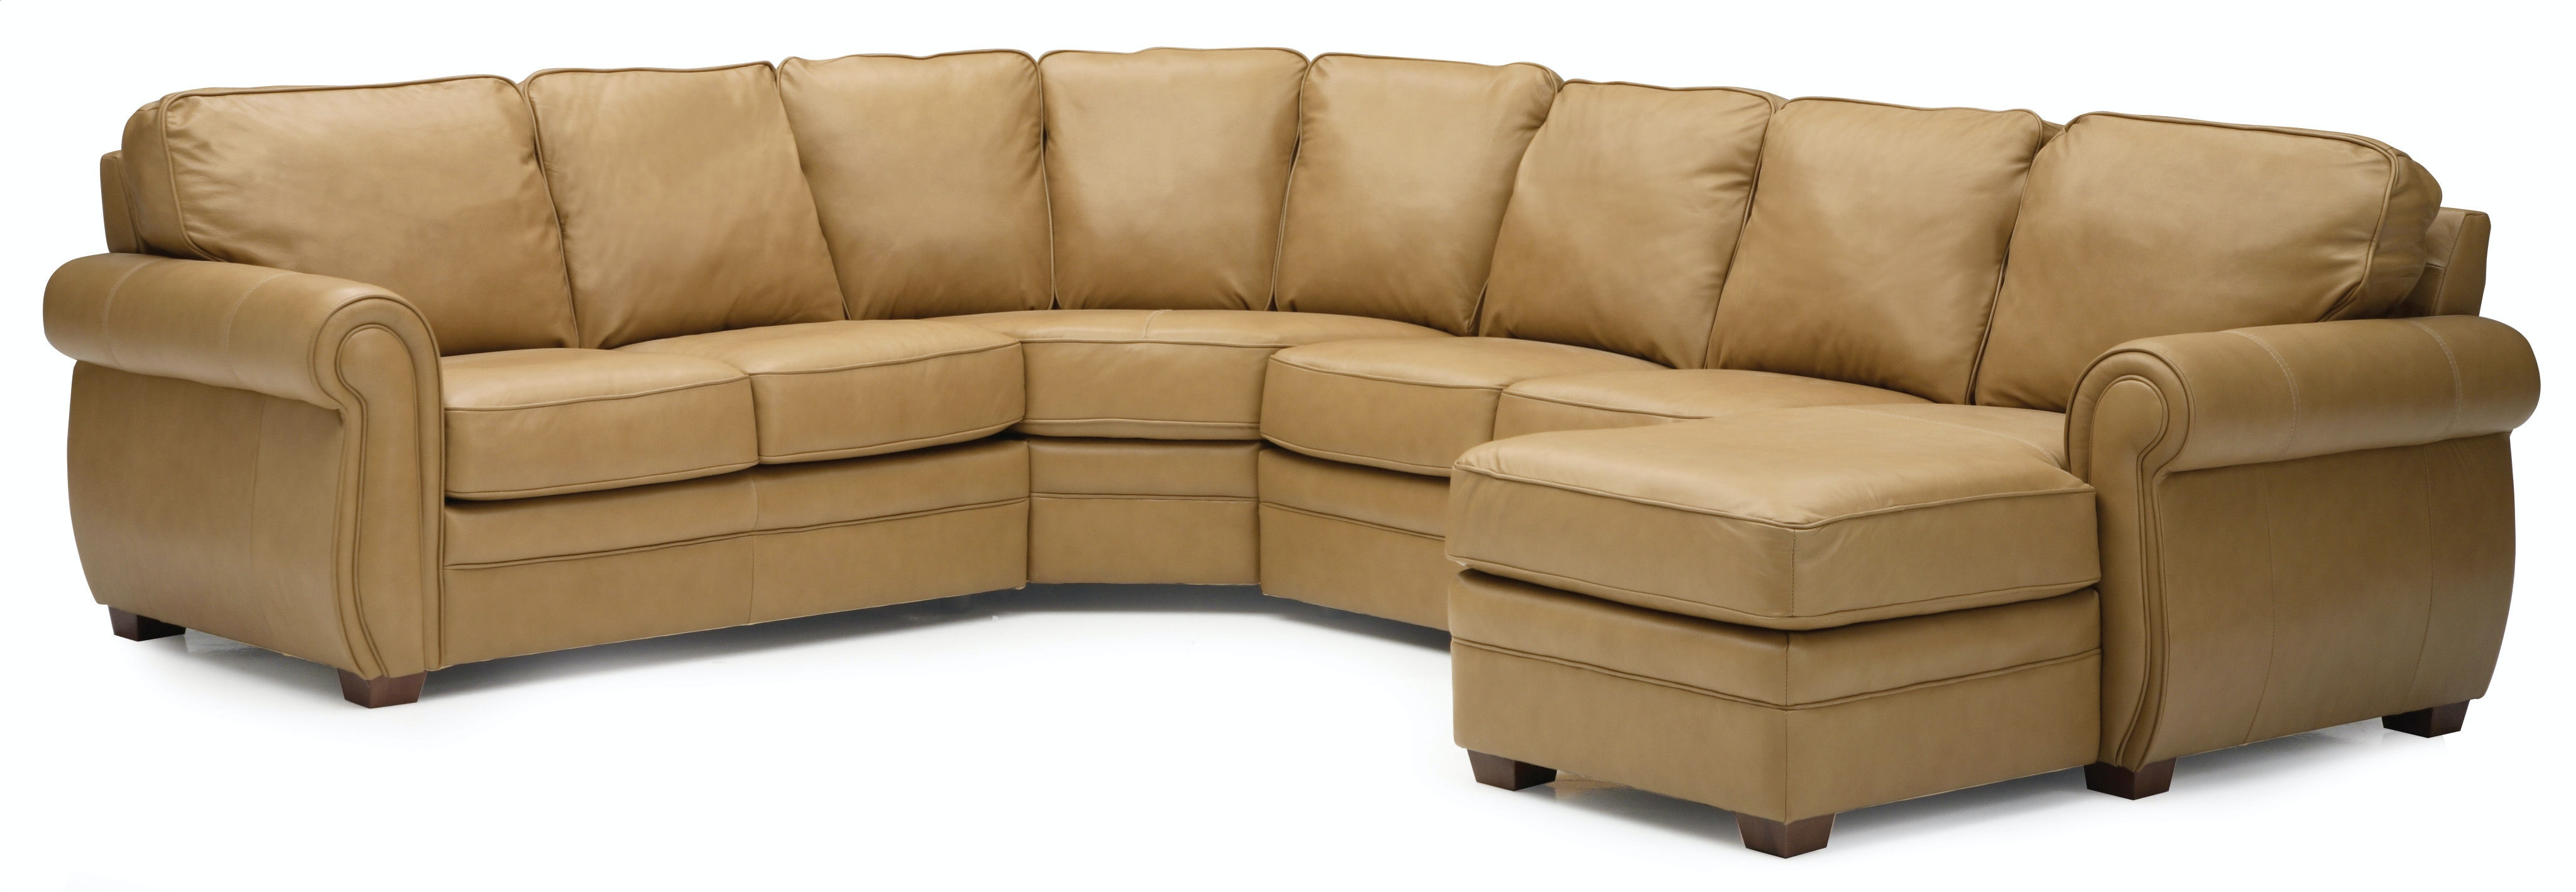 Palliser Furniture Living Room Viceroy Sectional 77492 Sectional   Slone  Brothers   Longwood And Orlando, FL